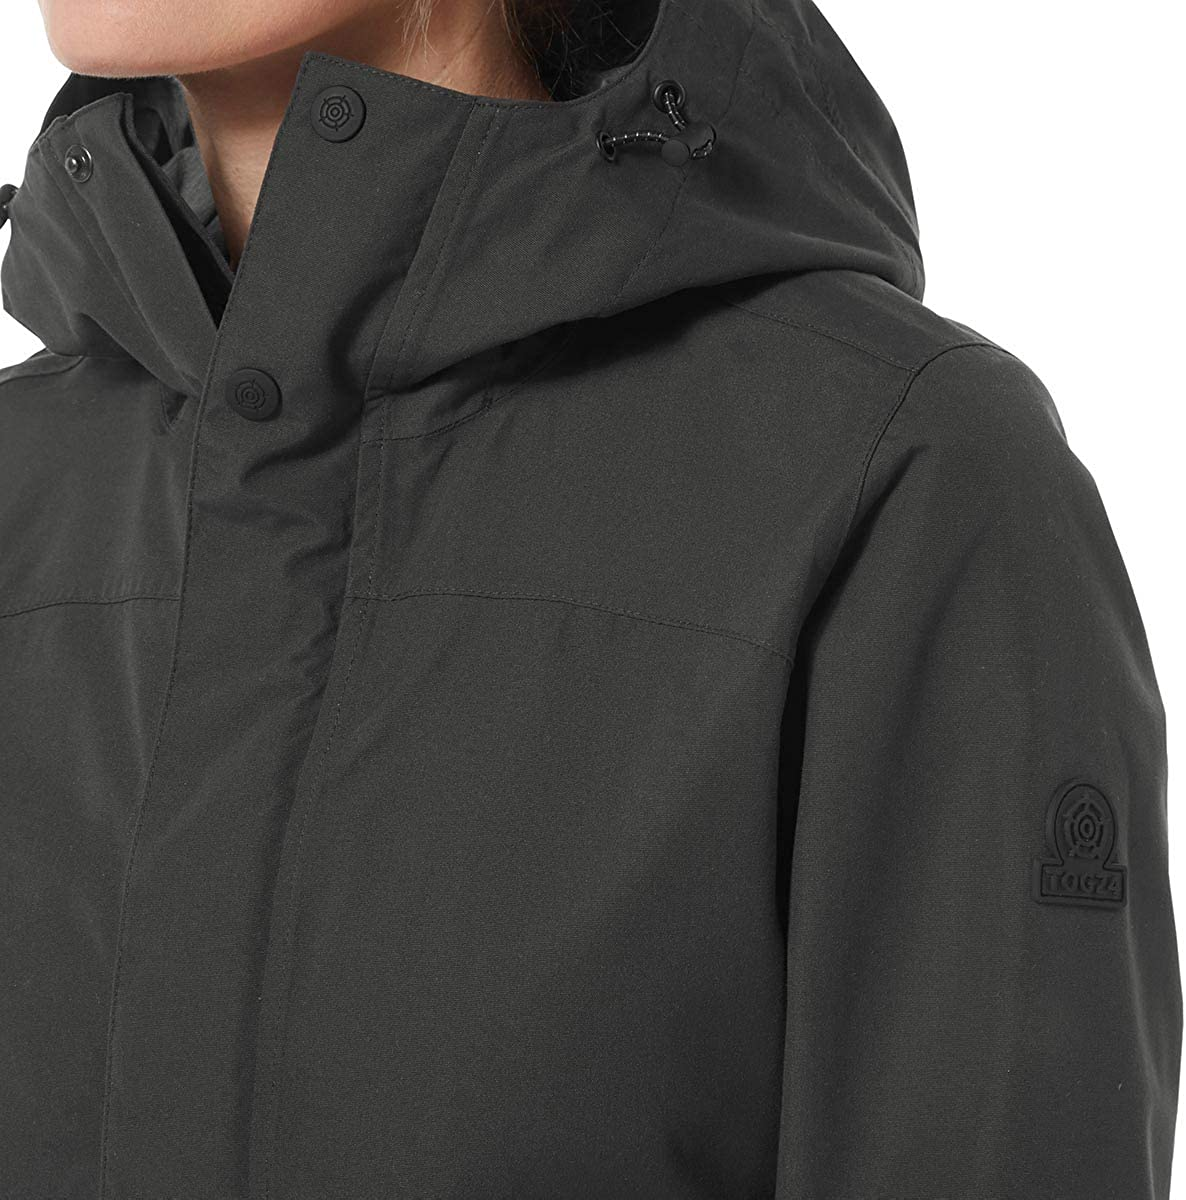 TOG 24 Dawson Womens Waterproof Jacket Styled as a Parka Coat with Cotton-Look Finish